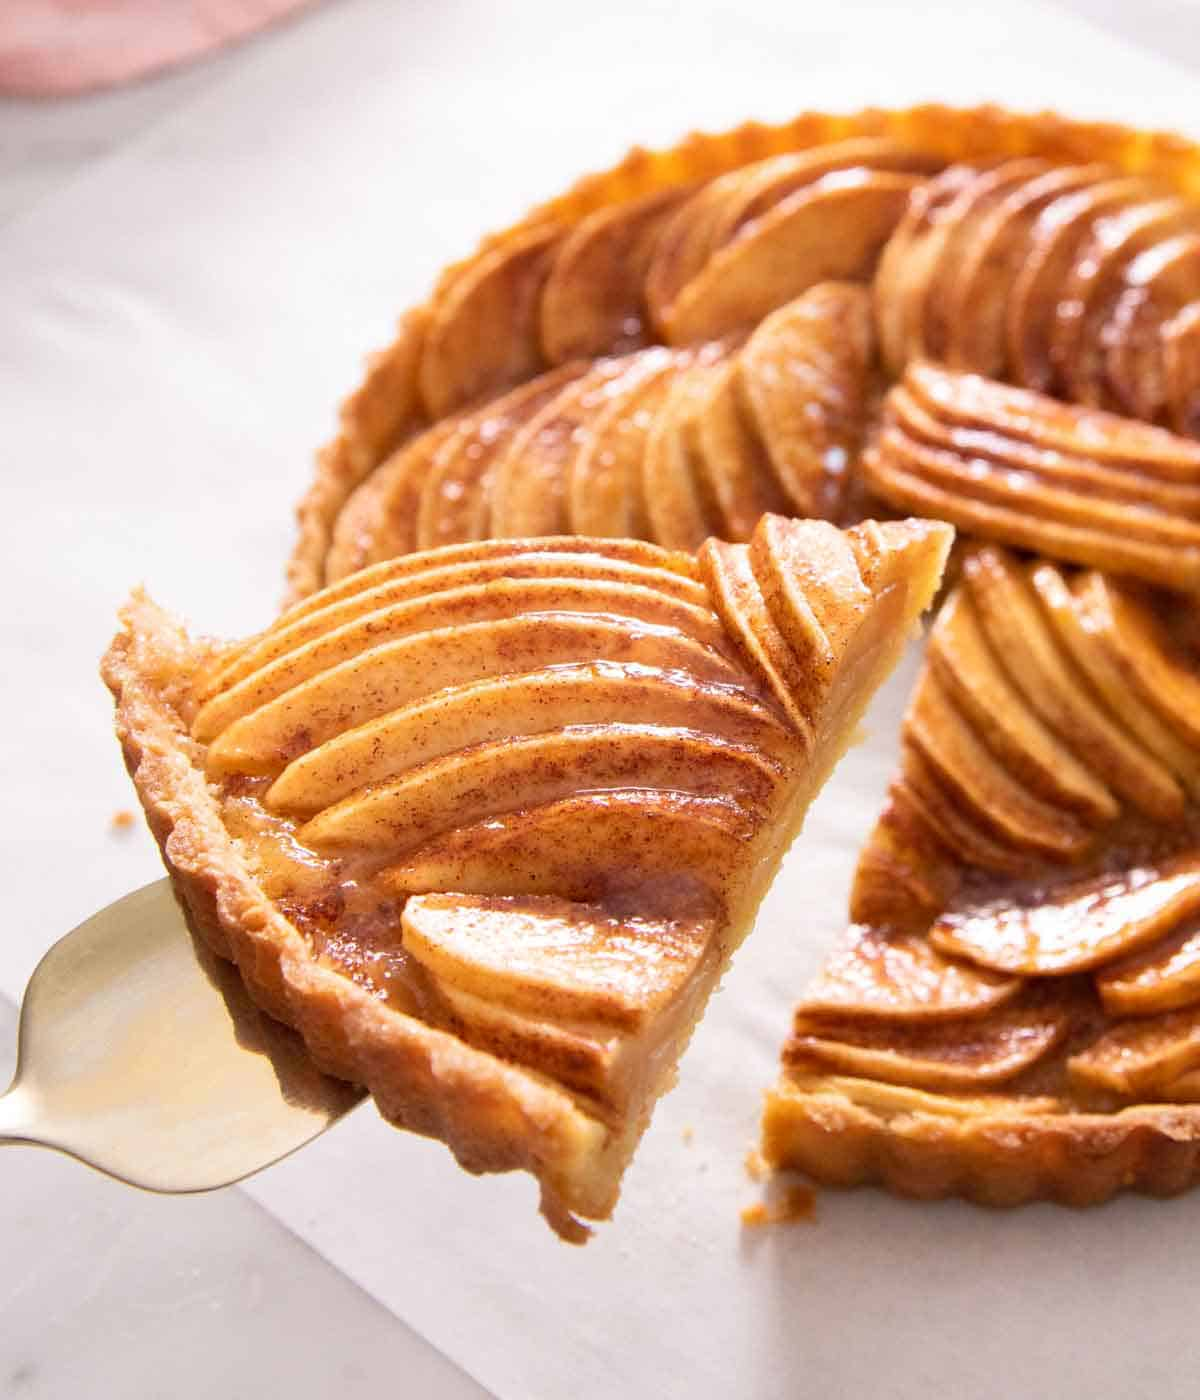 A slice of apple tart being lifted up from the tart.